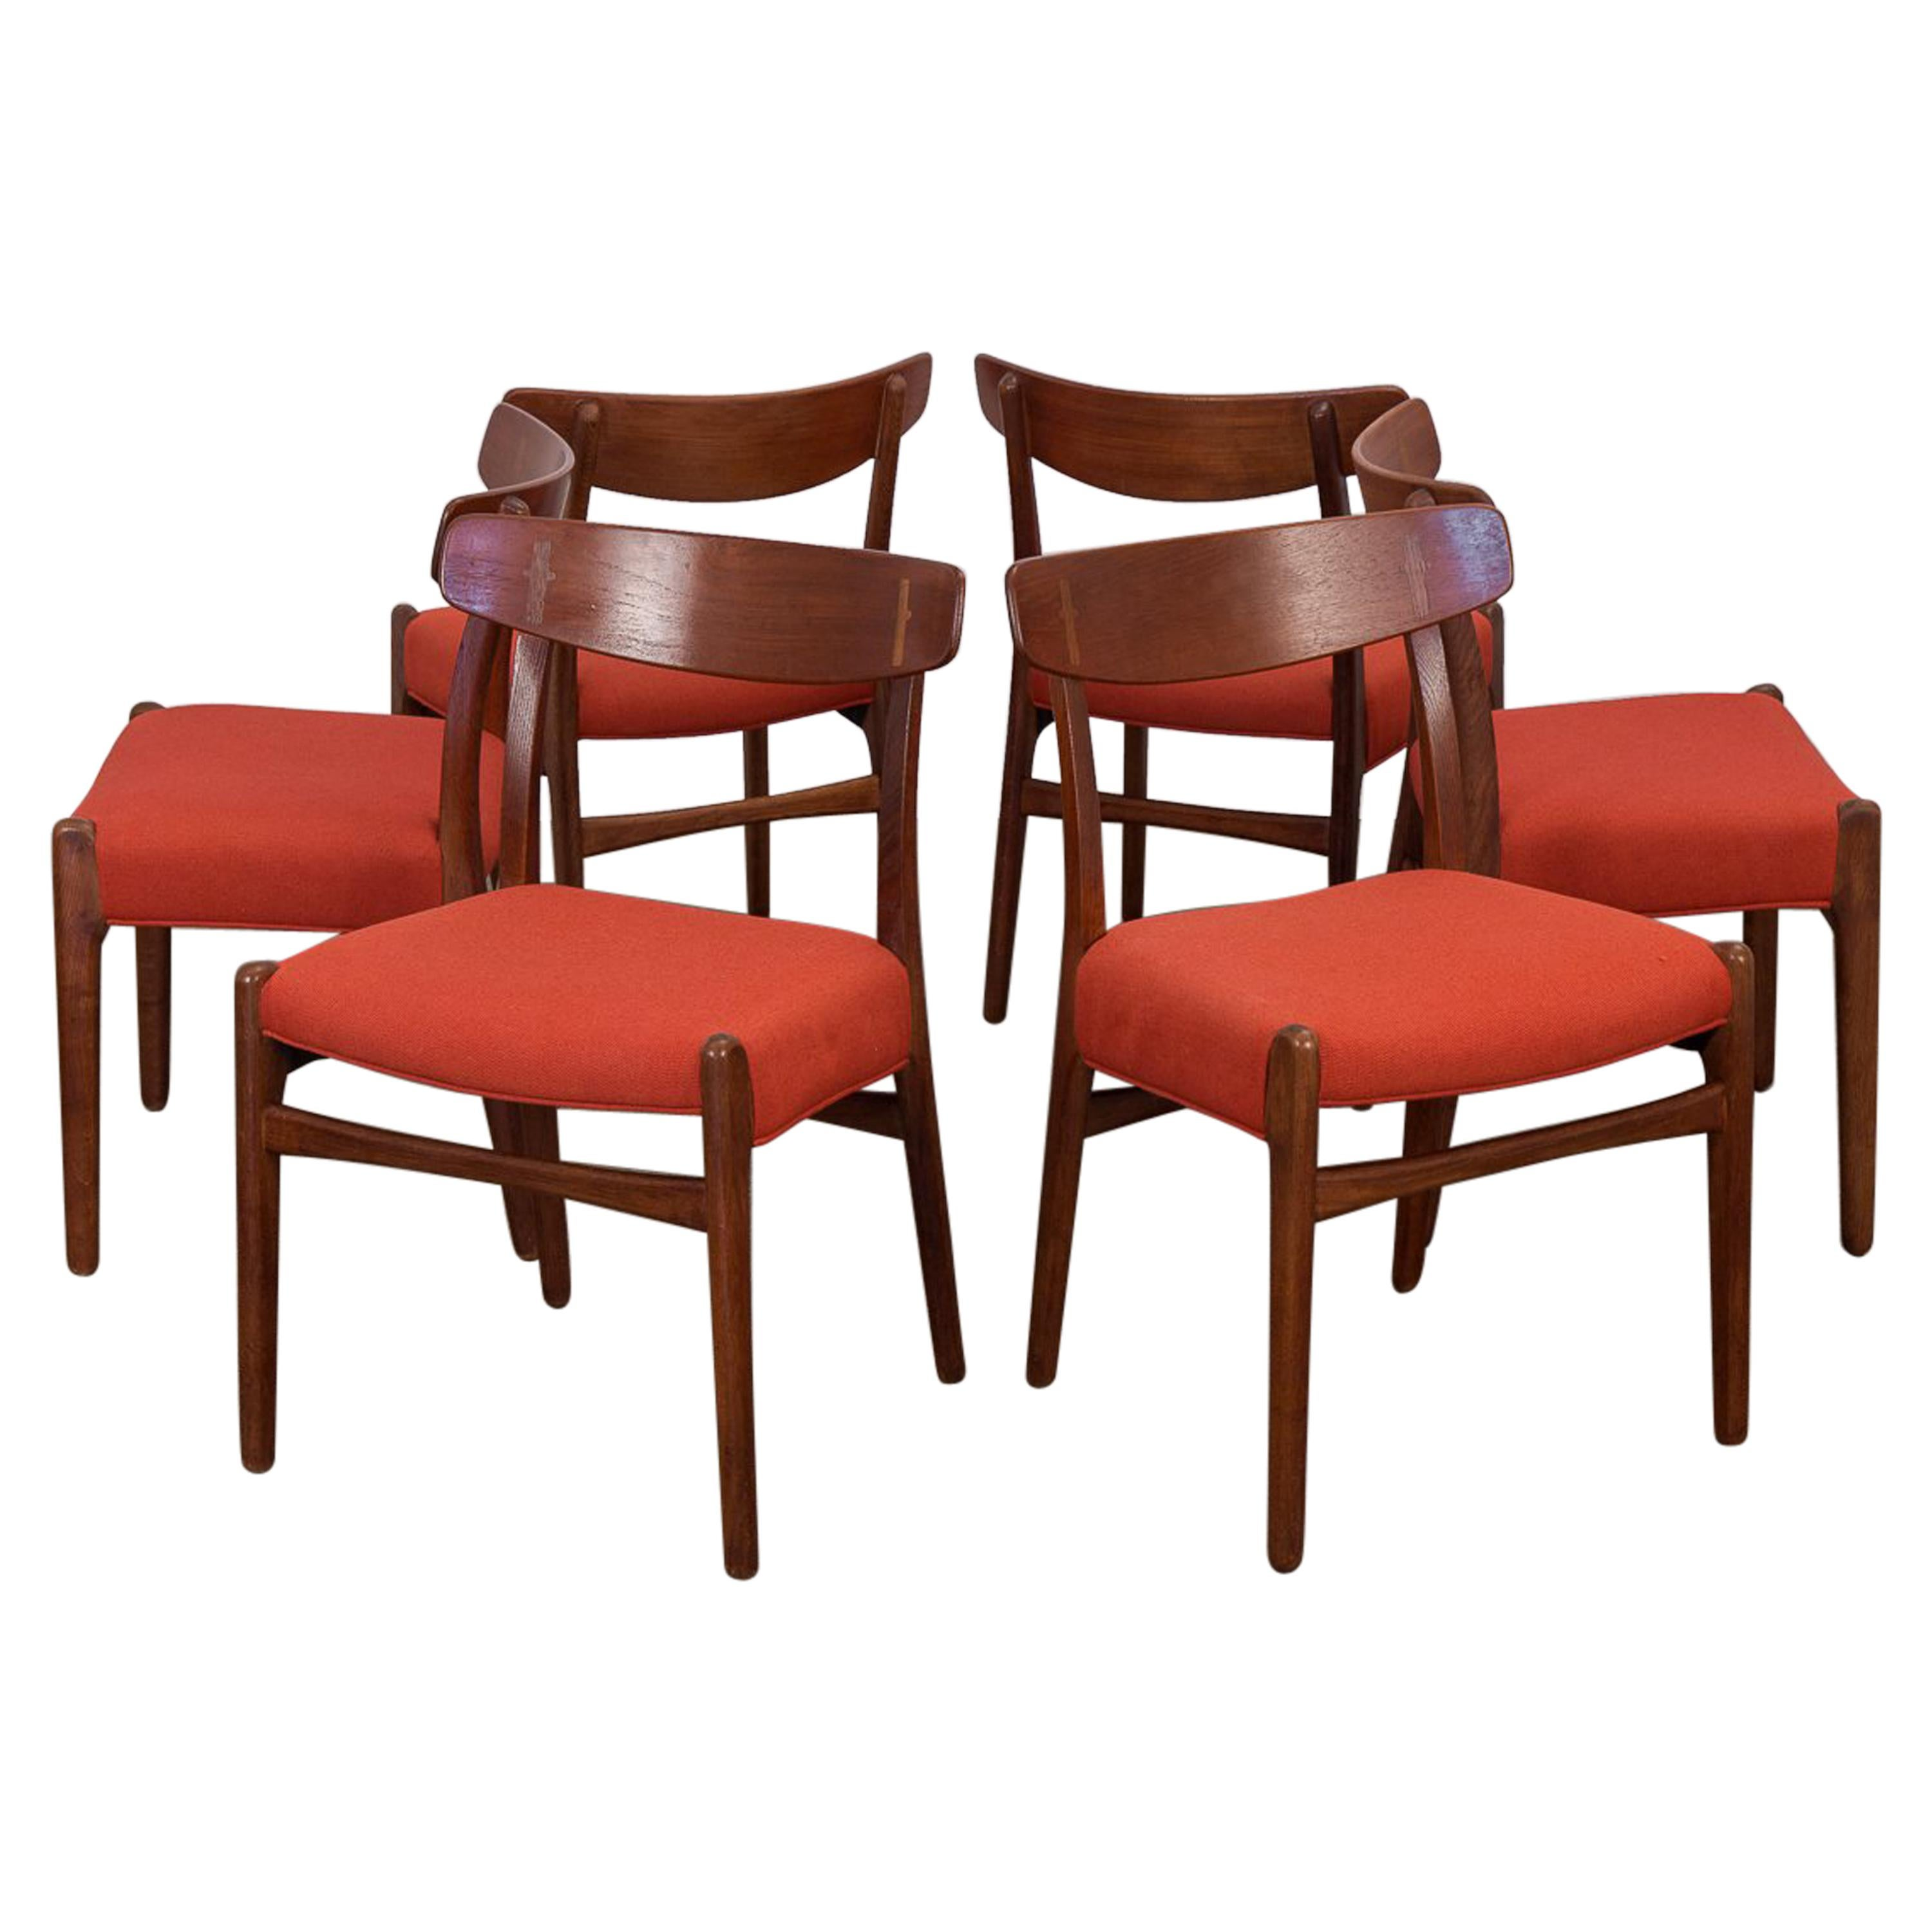 Set of Six Hans J. Wegner Ch-23 Dining Chairs for Carl Hansen